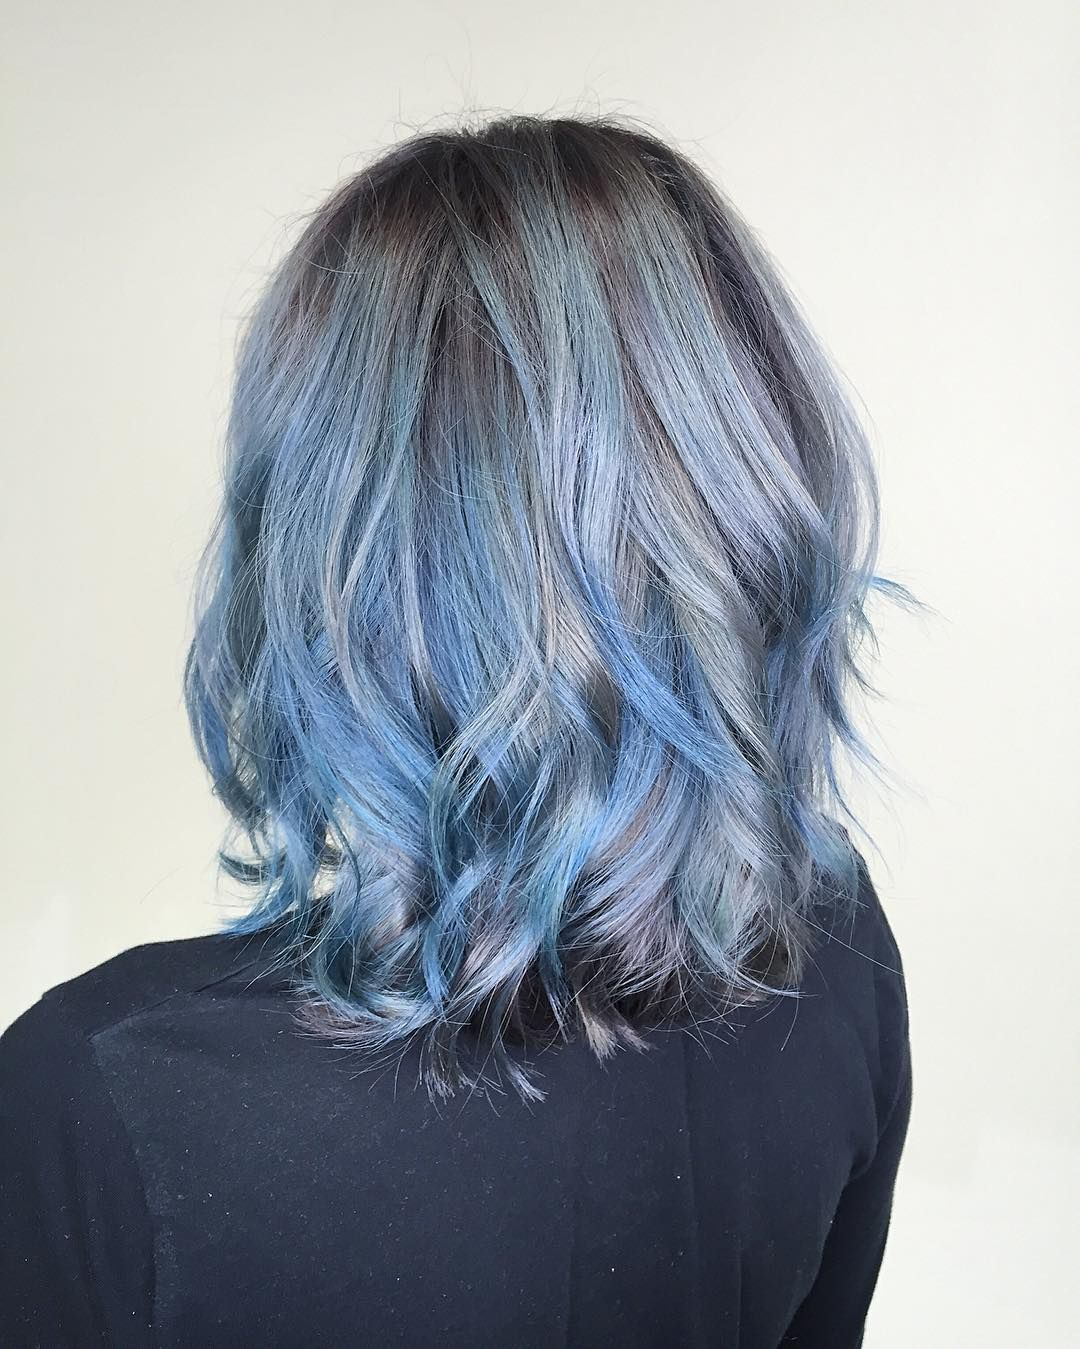 Shoulder Length Wavy Hair With Short Layers And Blue Balayage